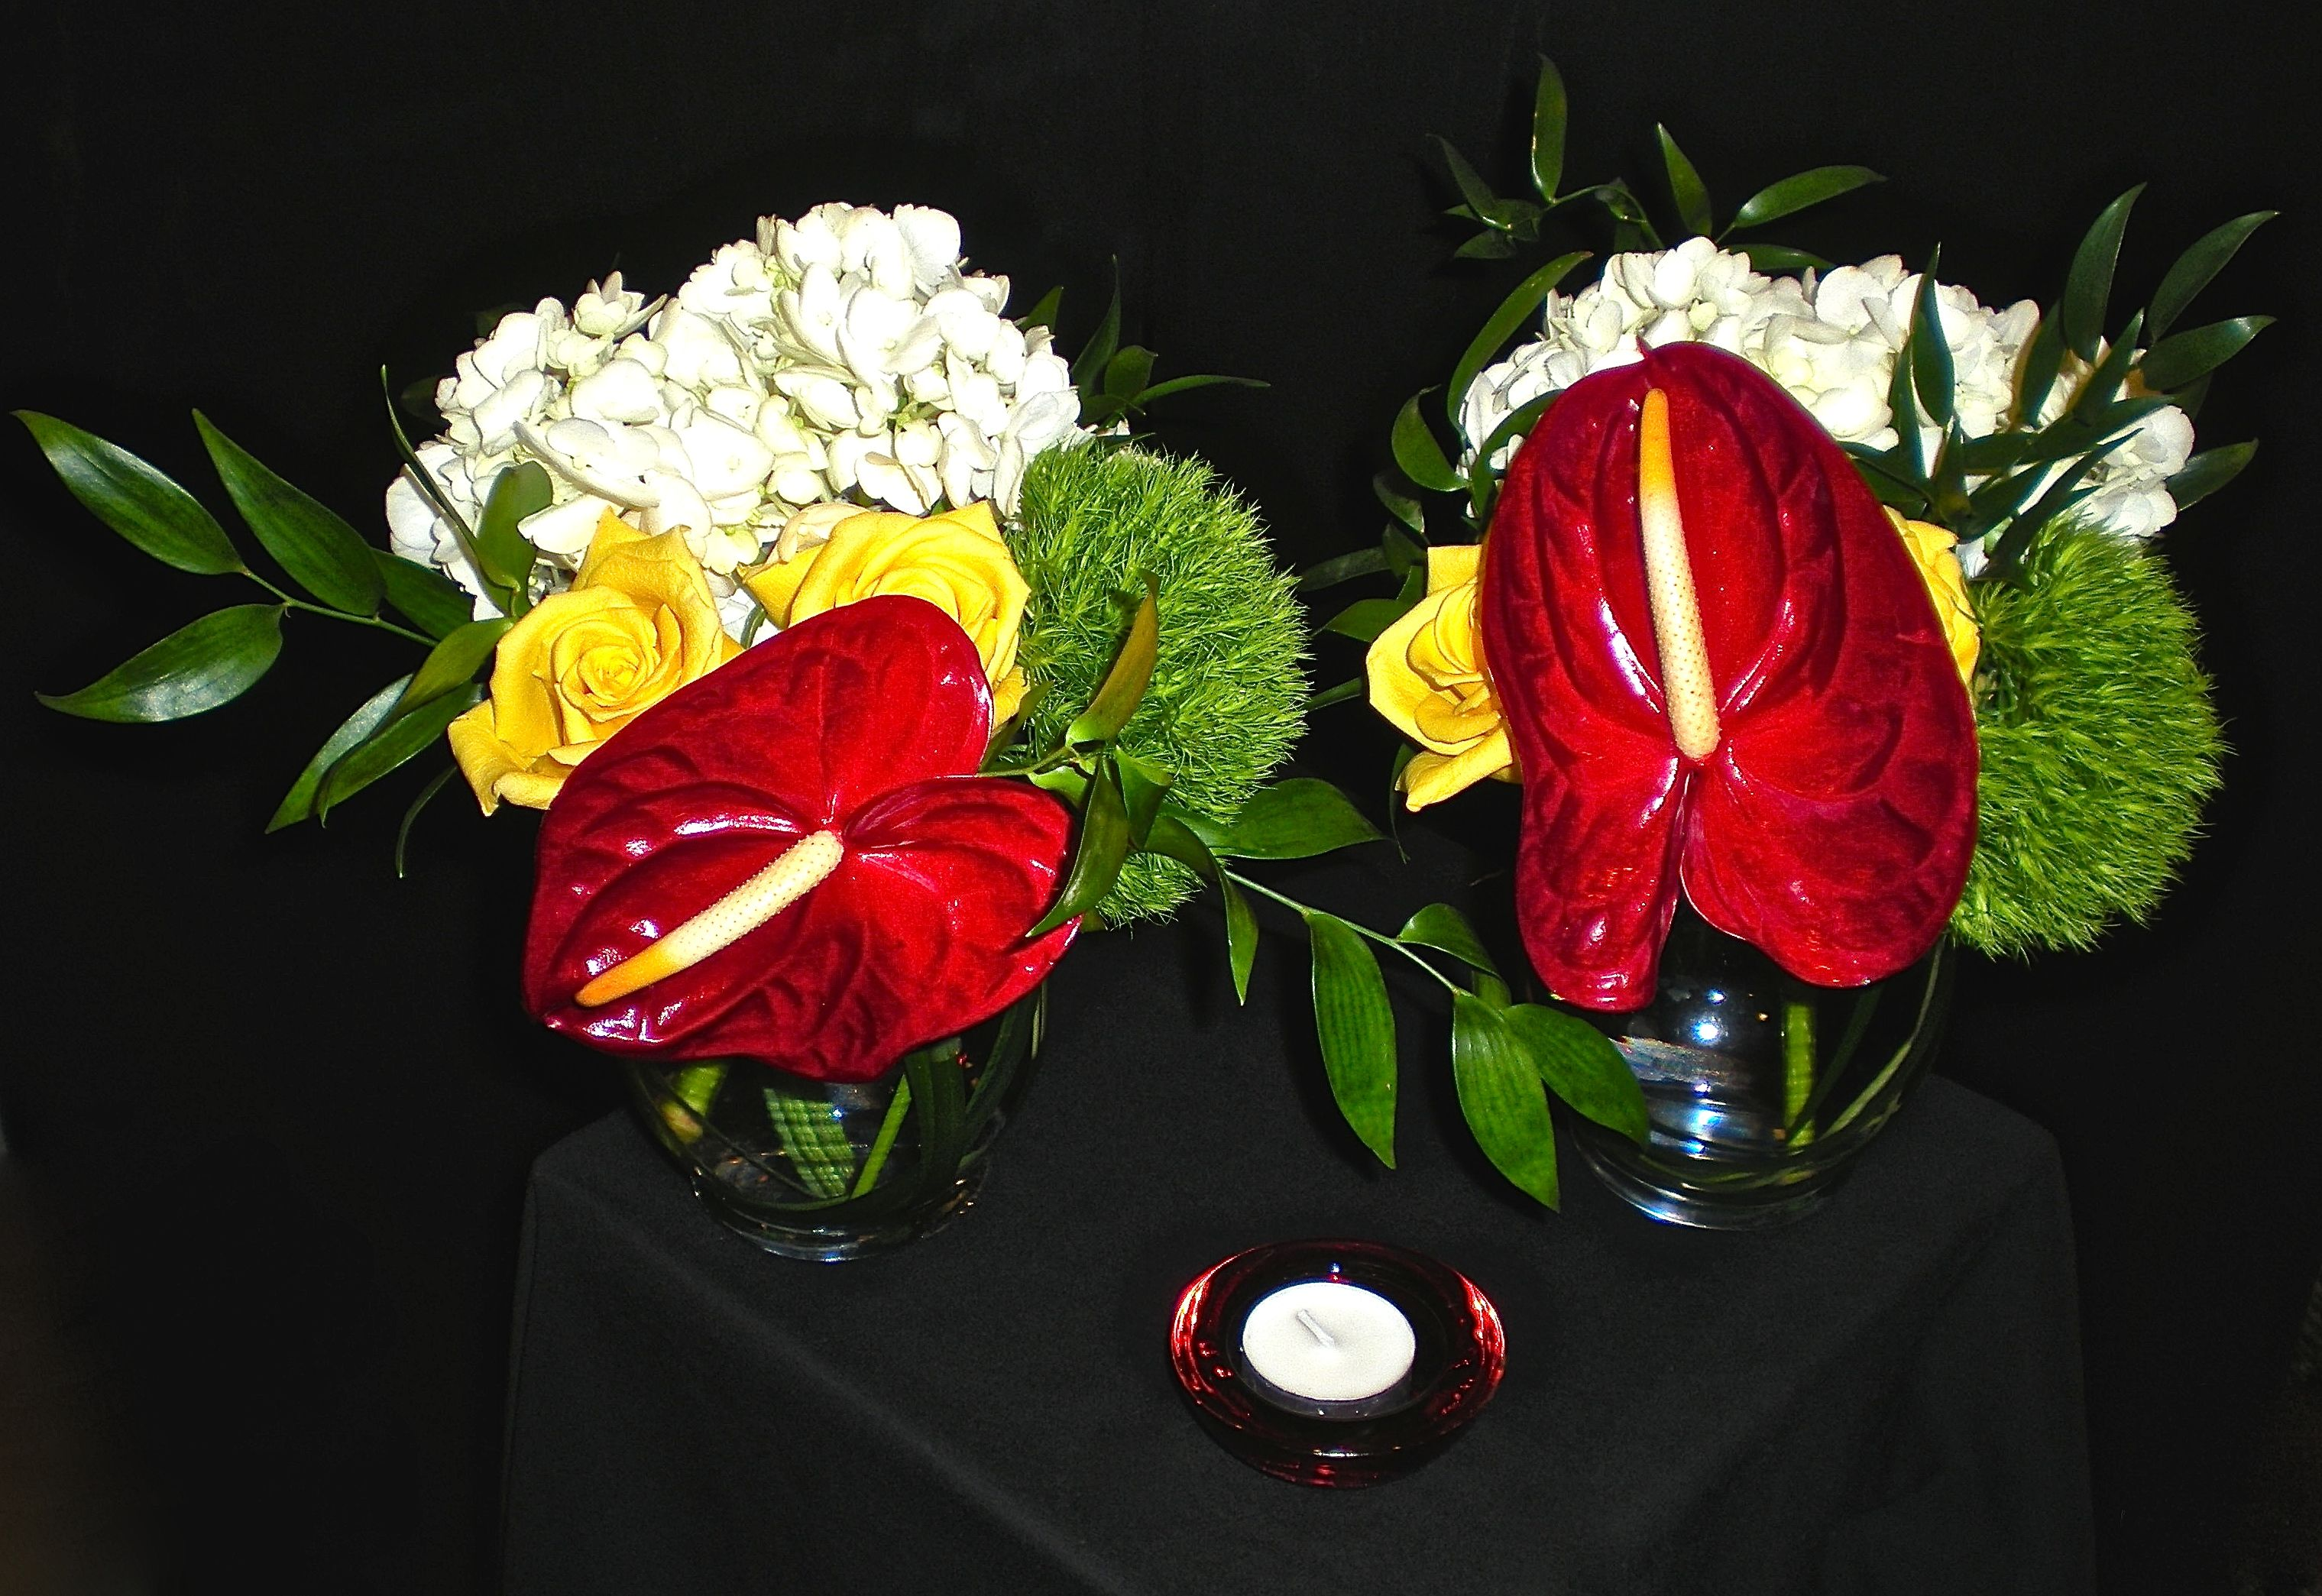 Special Event Floral Arrangements From Fuji Floral Design